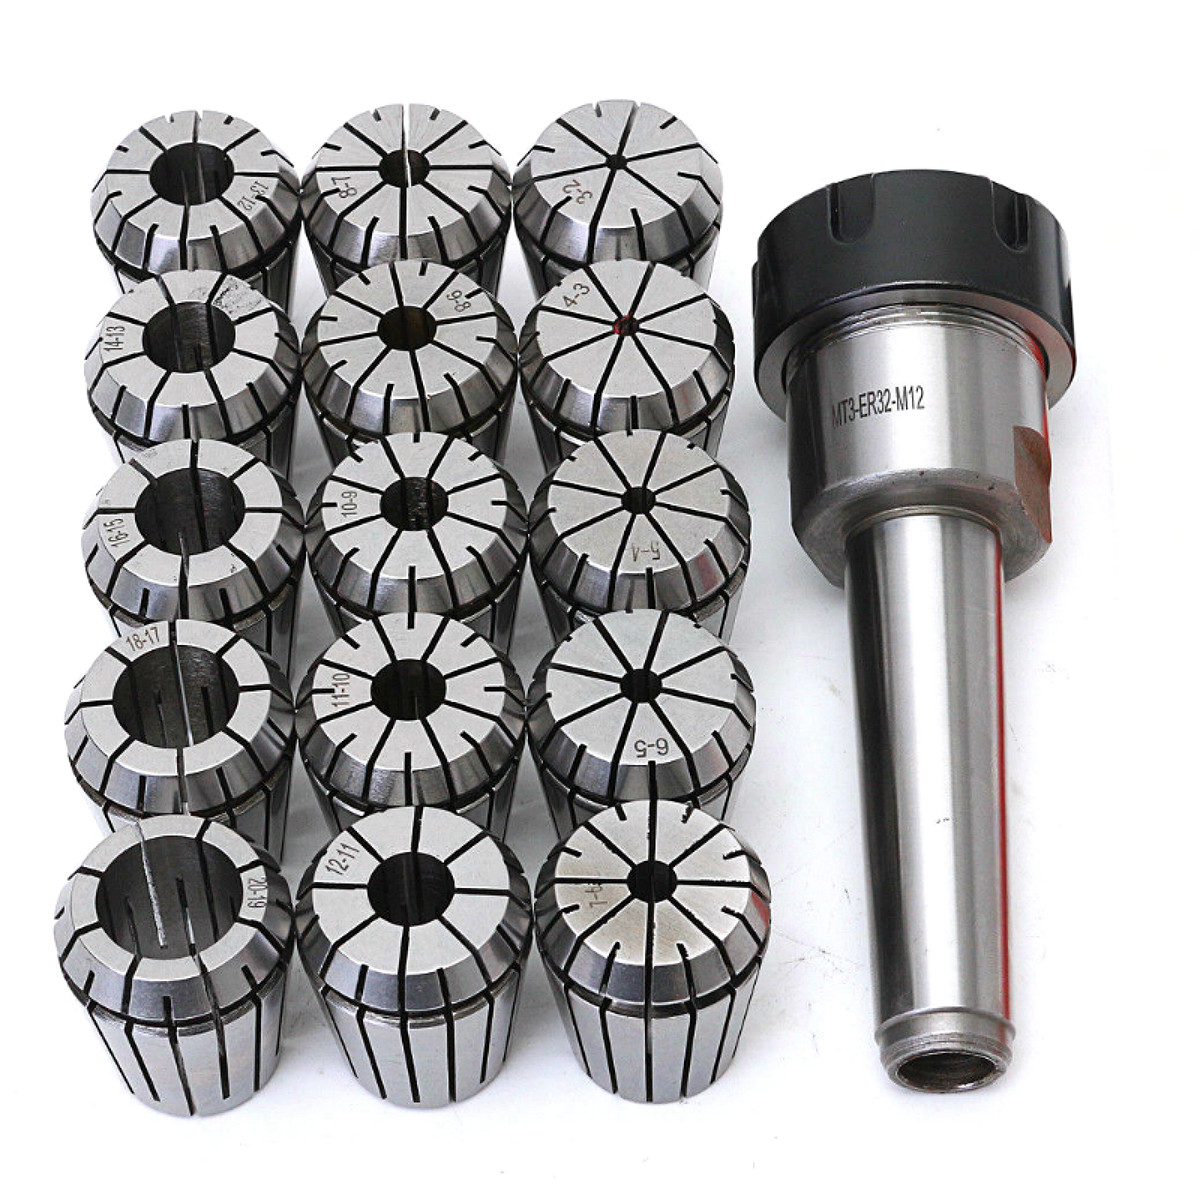 16pcs/set ER32 Collet Chuck Holder MT3 M12 Morse Taper + ER32 Spring Collets ID 3-20mm For Lathe Milling Tools mt 2 morse taper shank with 3 16mm spanner chuck 2 morse taper shank b16 heavy spanner drill chuck for twist drills chuck